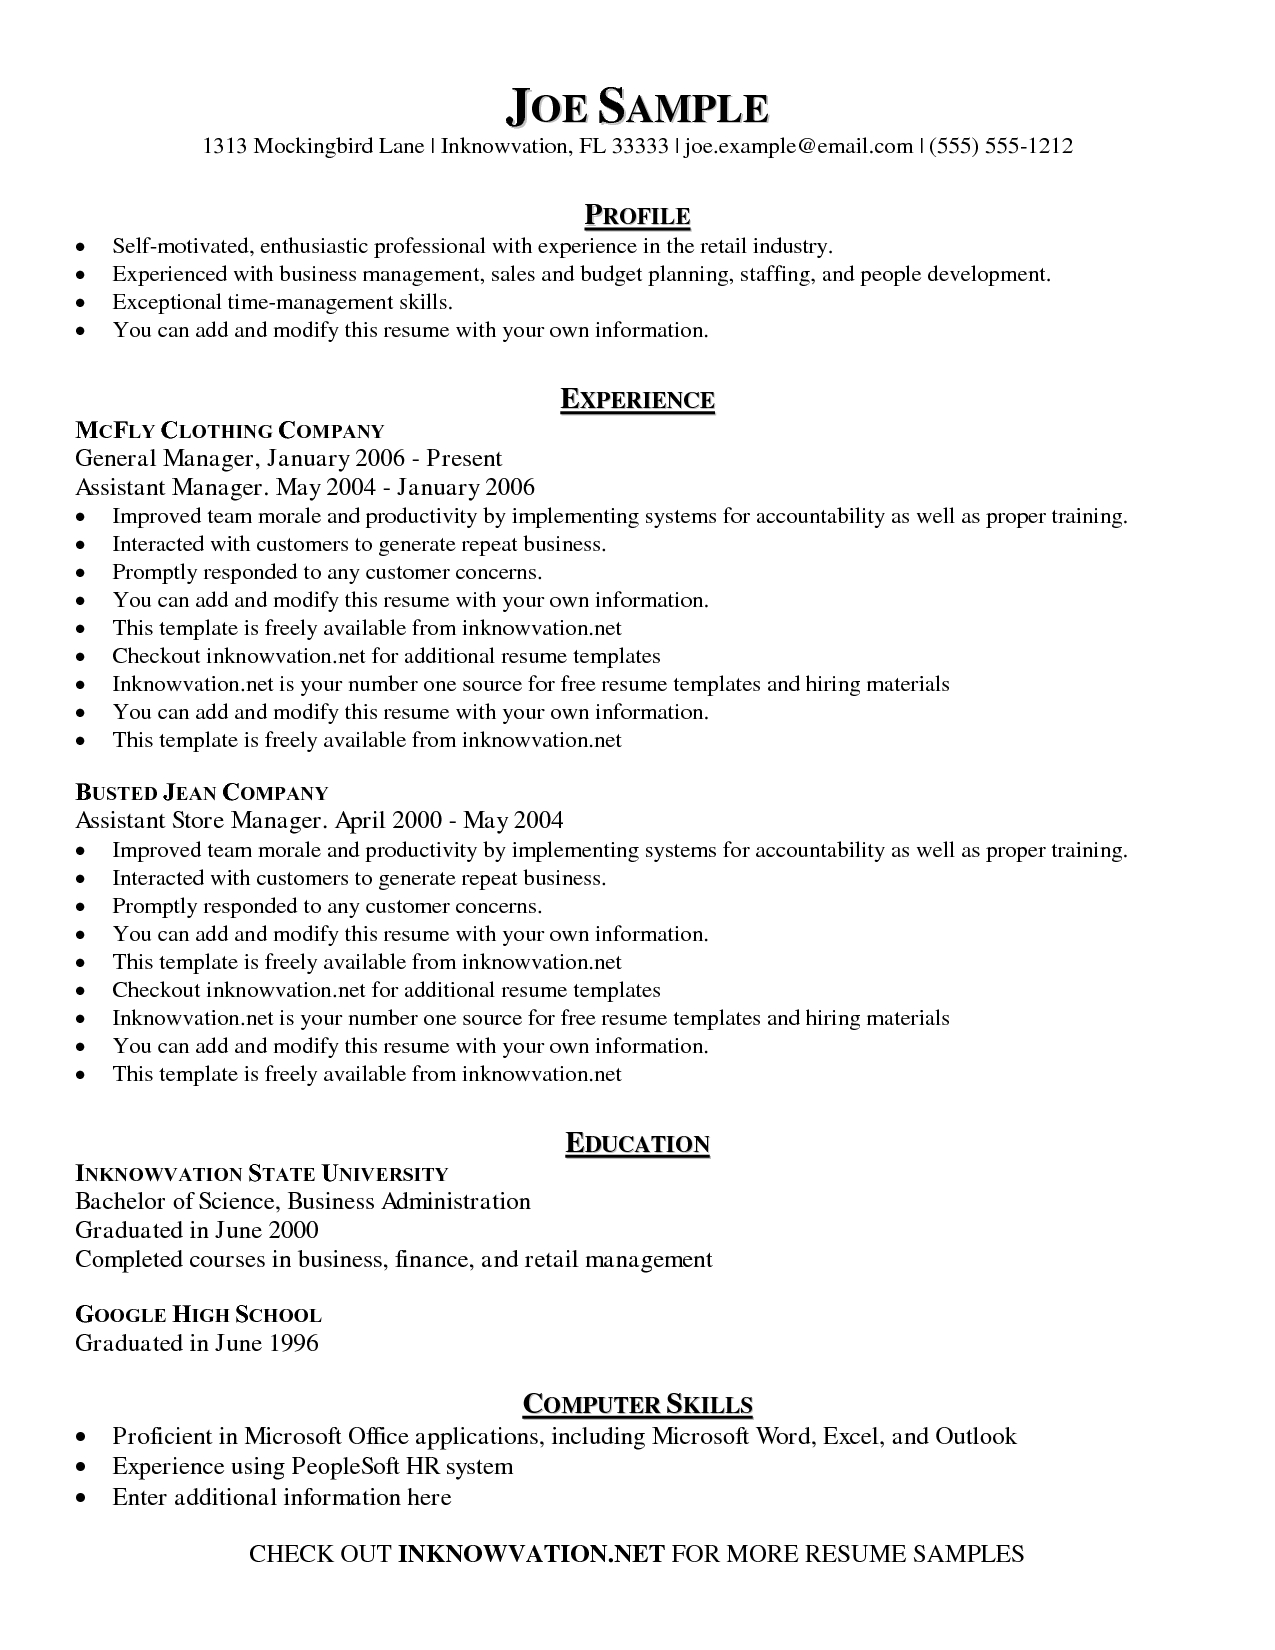 019 Asa Essay Format Sample Resumes Templates Asafonggecco How To Write Resume Template Remarkable Reference Example Citation Website For Journal Article Full